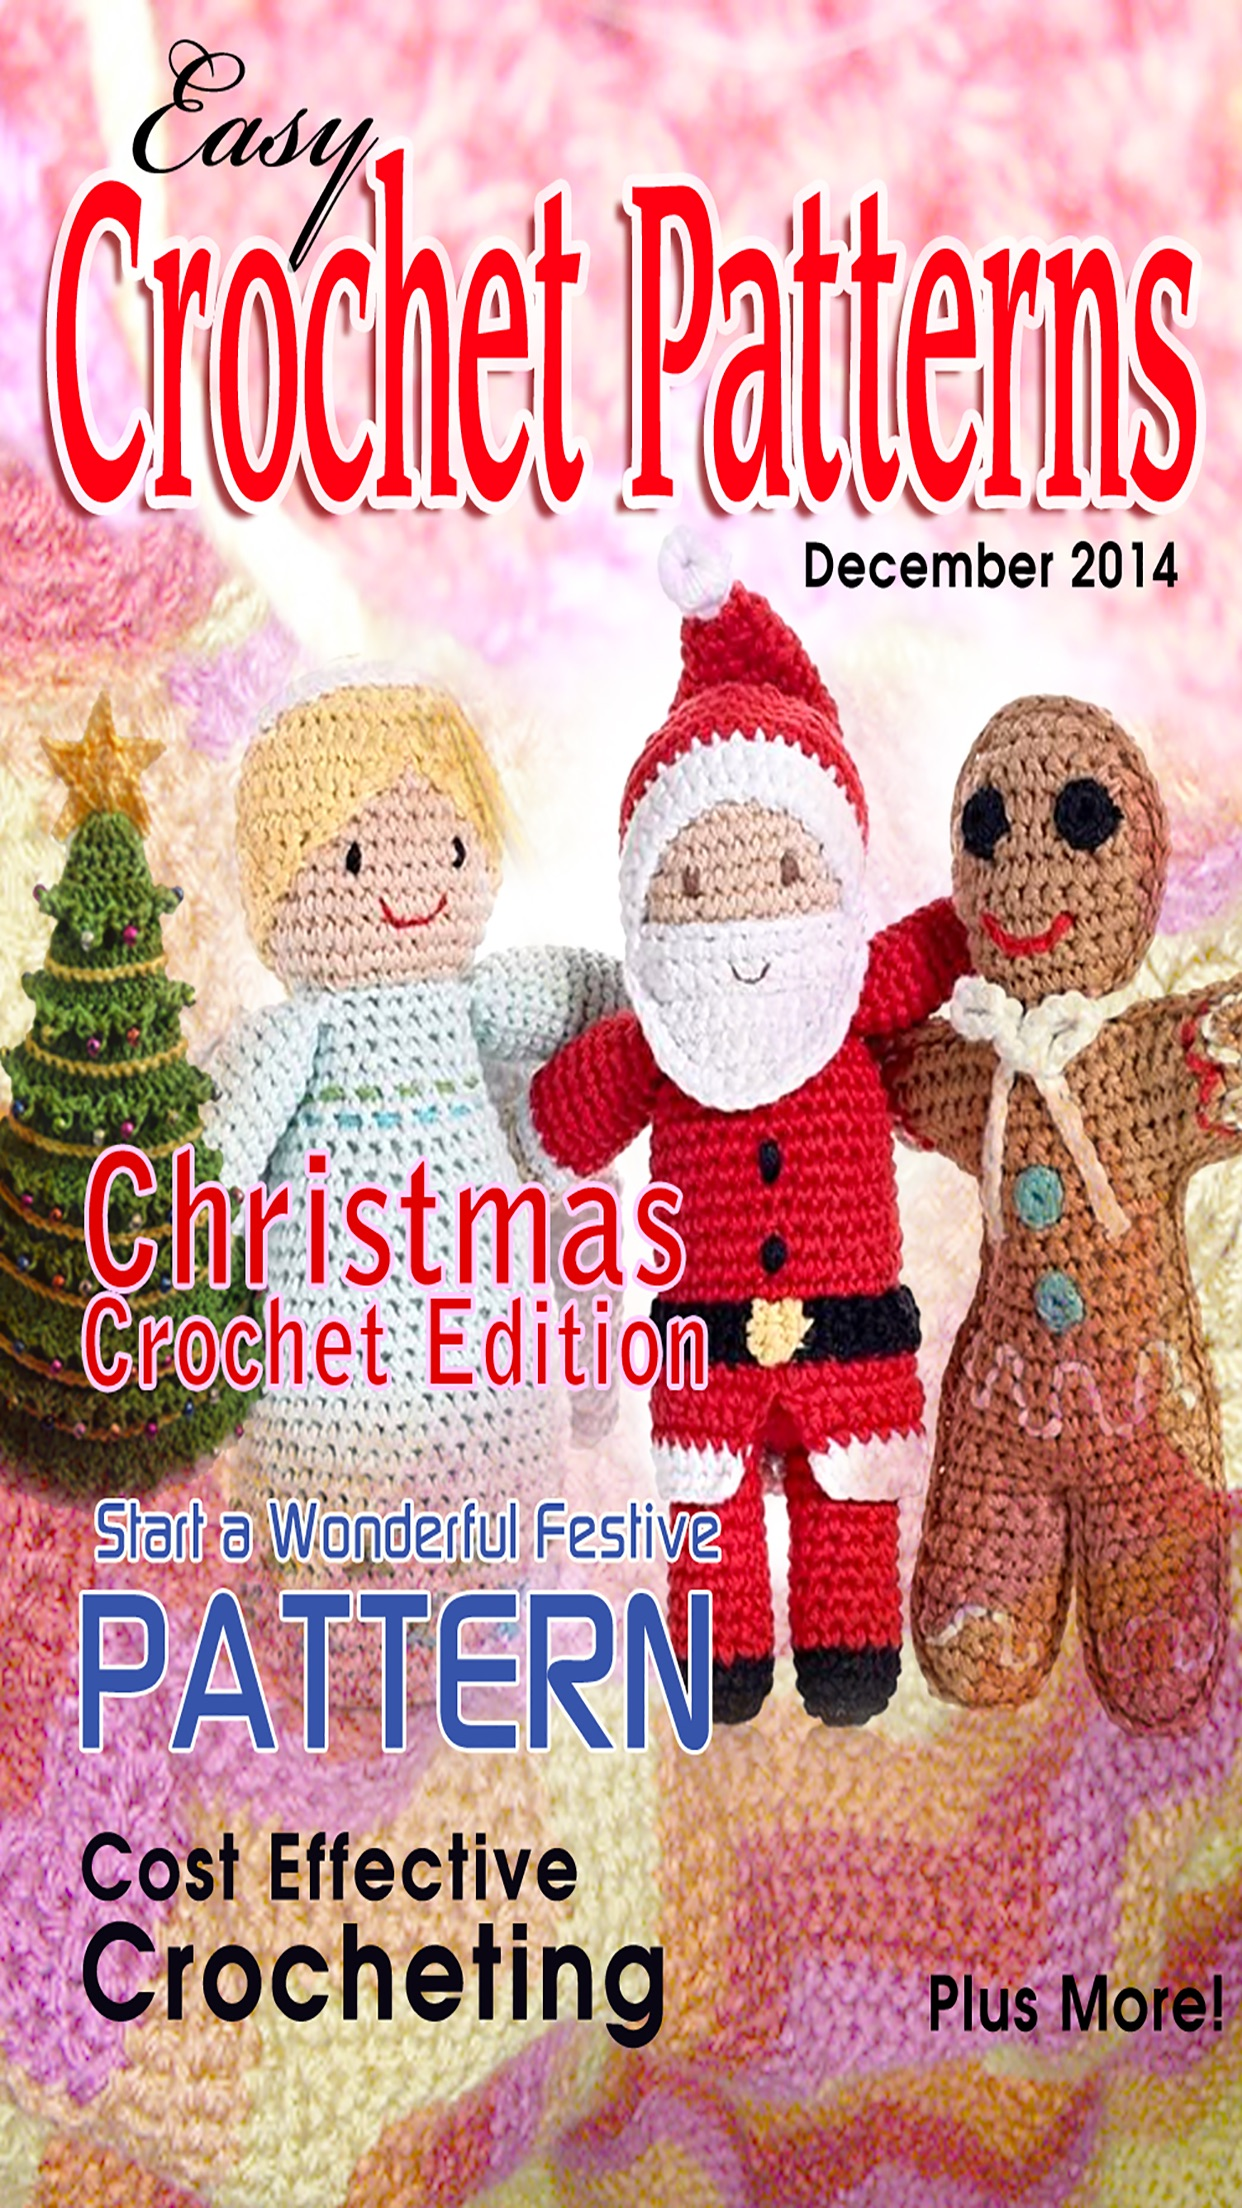 Easy Crochet Patterns Magazine - Start a New Crochet Project Today With Our Easy Crocheting Magazine Screenshot